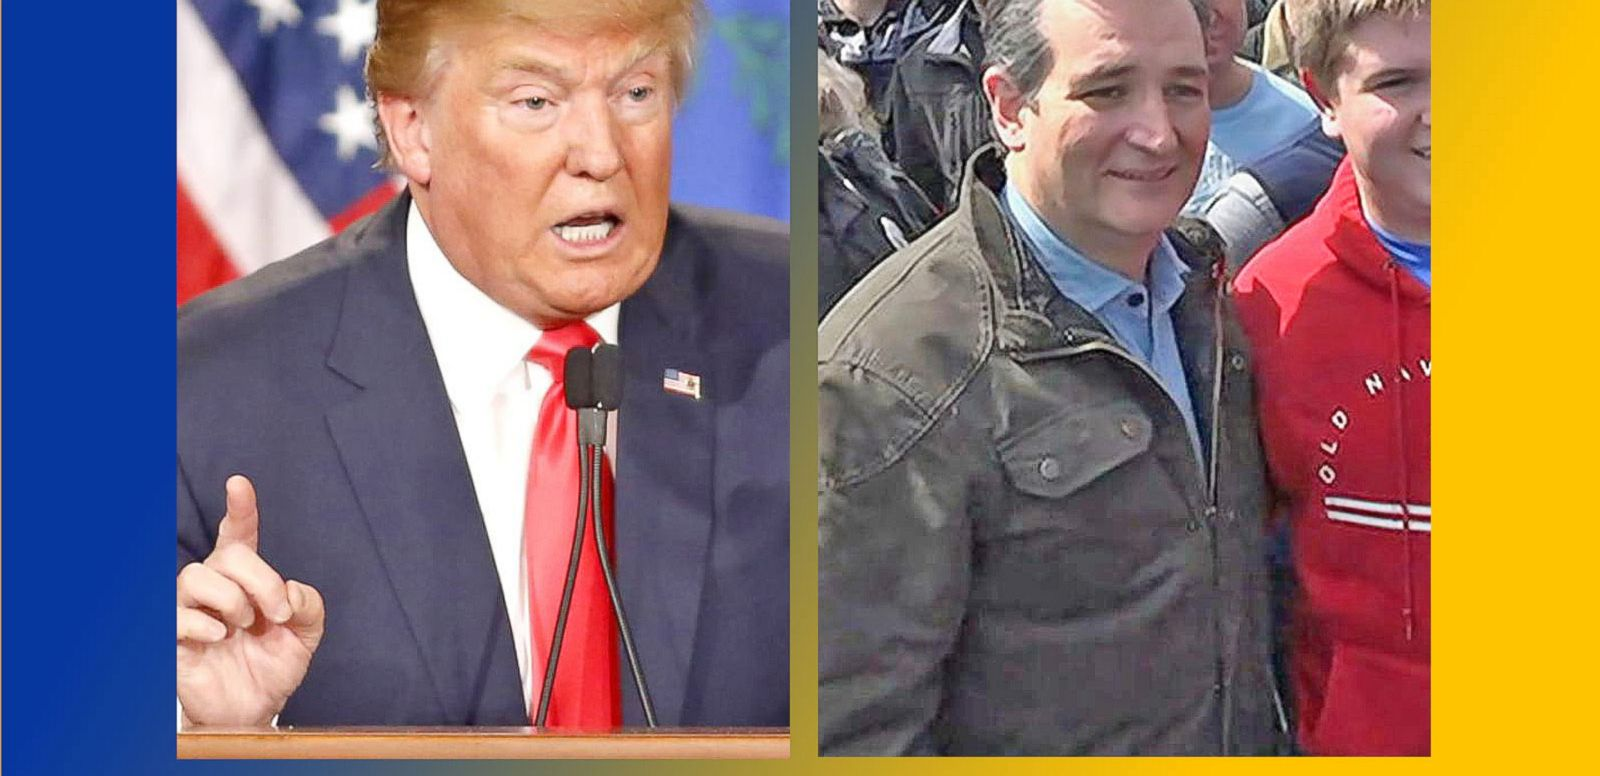 VIDEO: Donald Trump, Ted Cruz Battle for Votes in Wisconsin